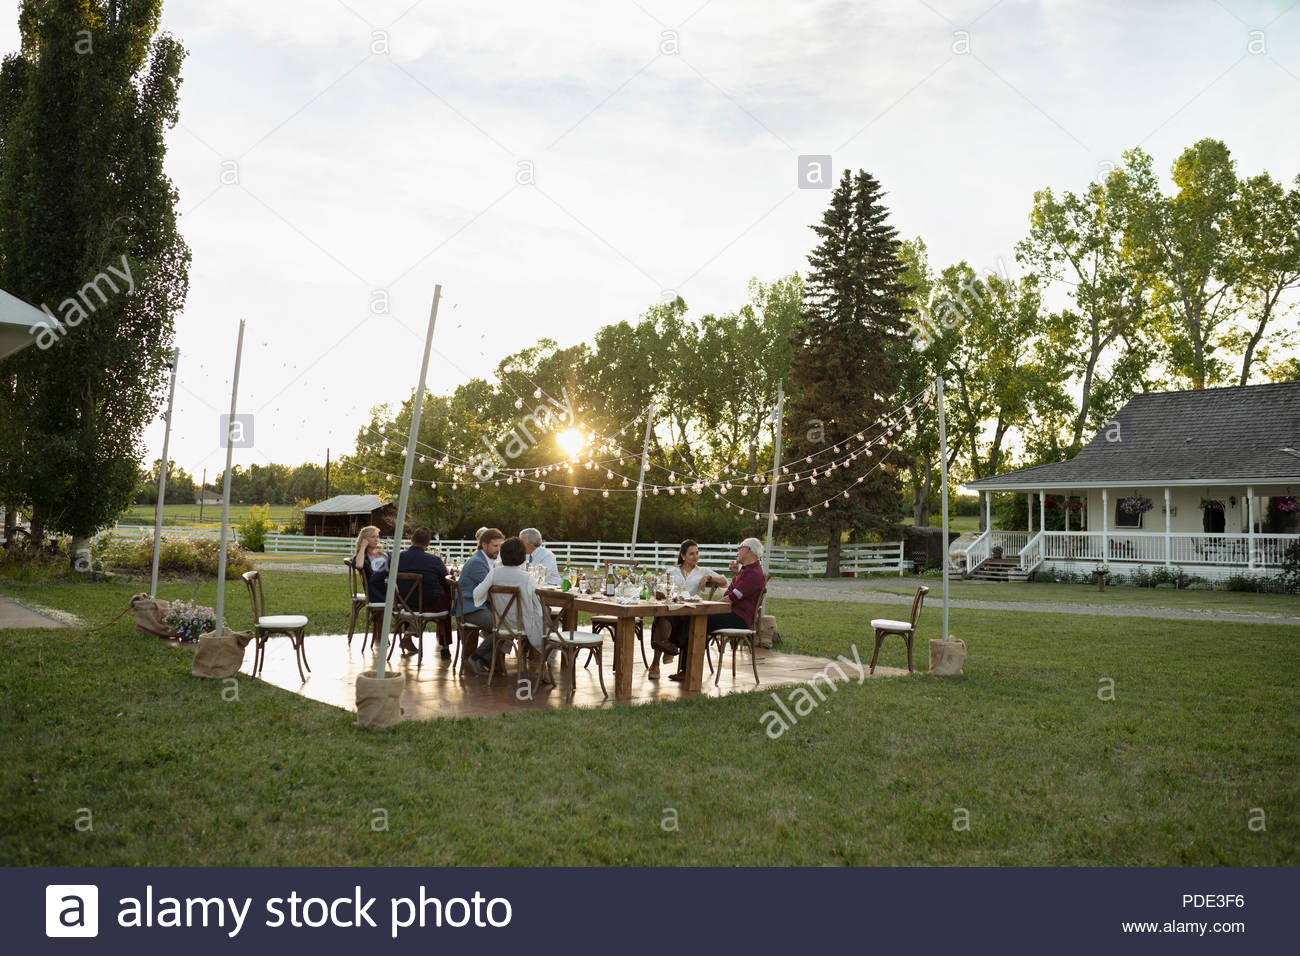 Friends eating and drinking at wedding reception table in rural garden - Stock Image